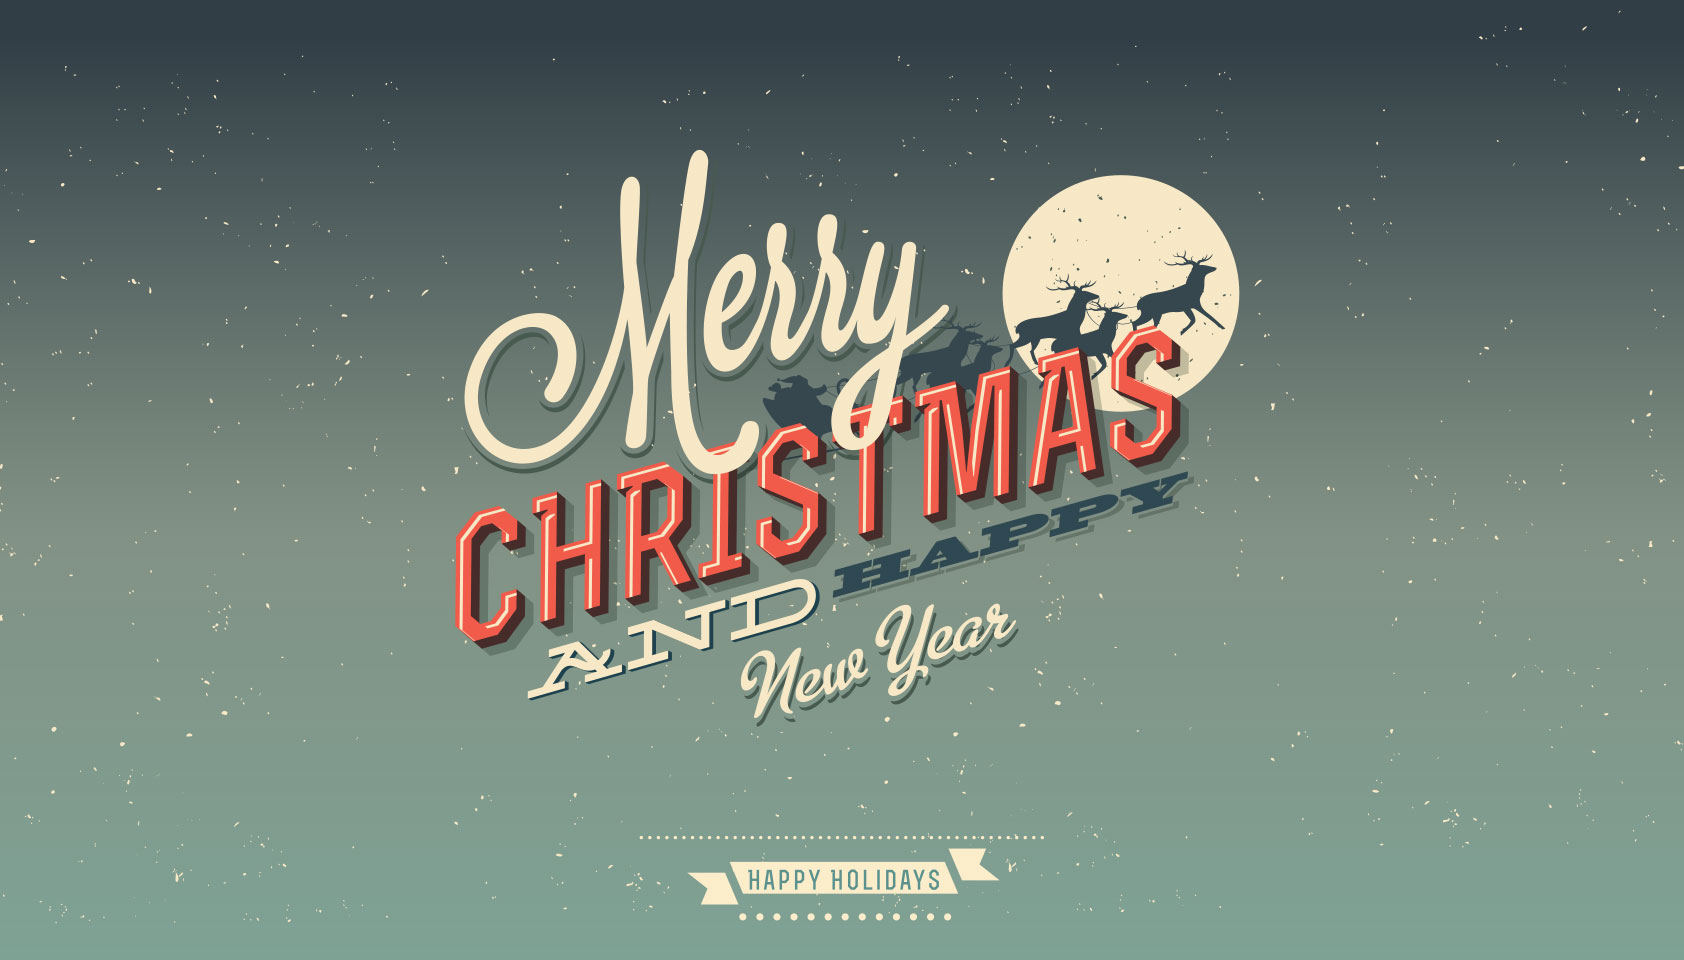 How to send clients some christmas cheer webdesigner depot kristyandbryce Image collections